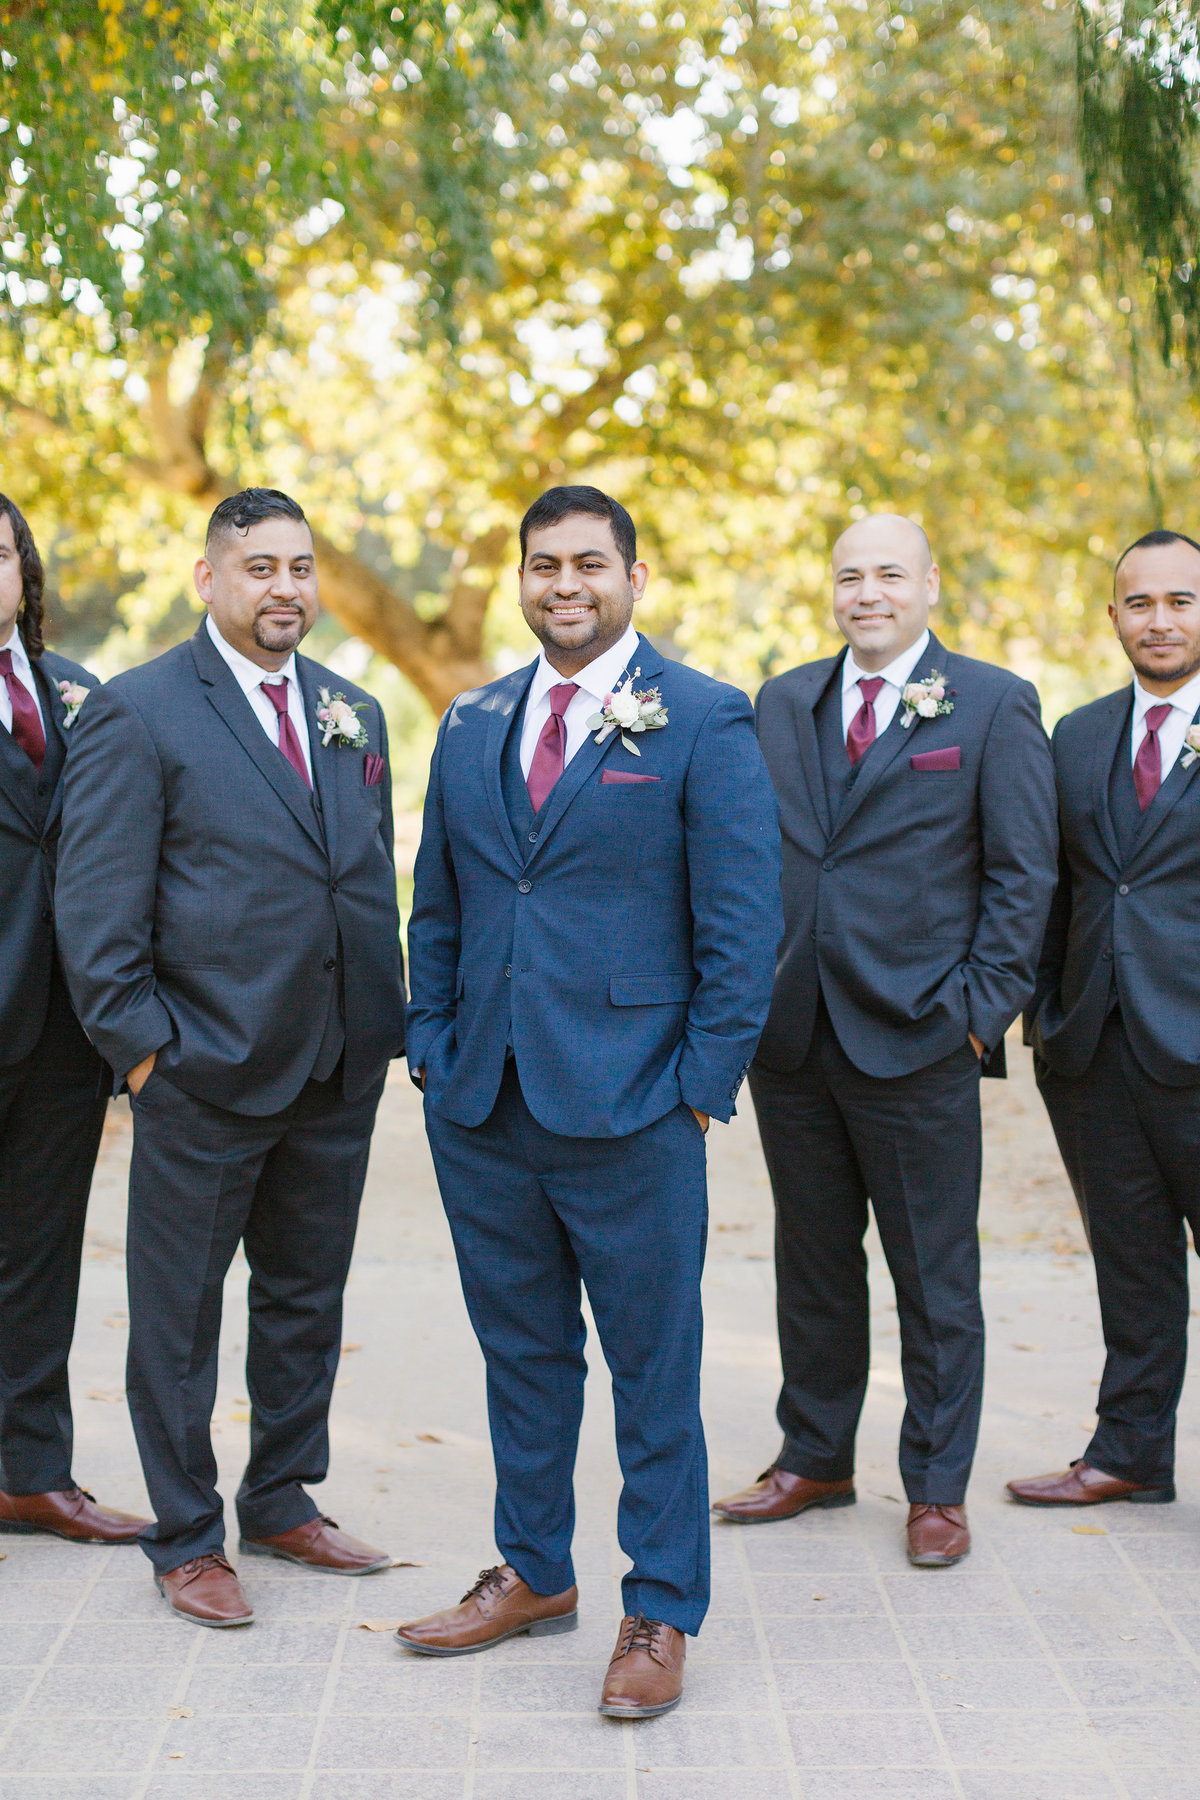 descanso-gardens-fall-wedding-photos-26